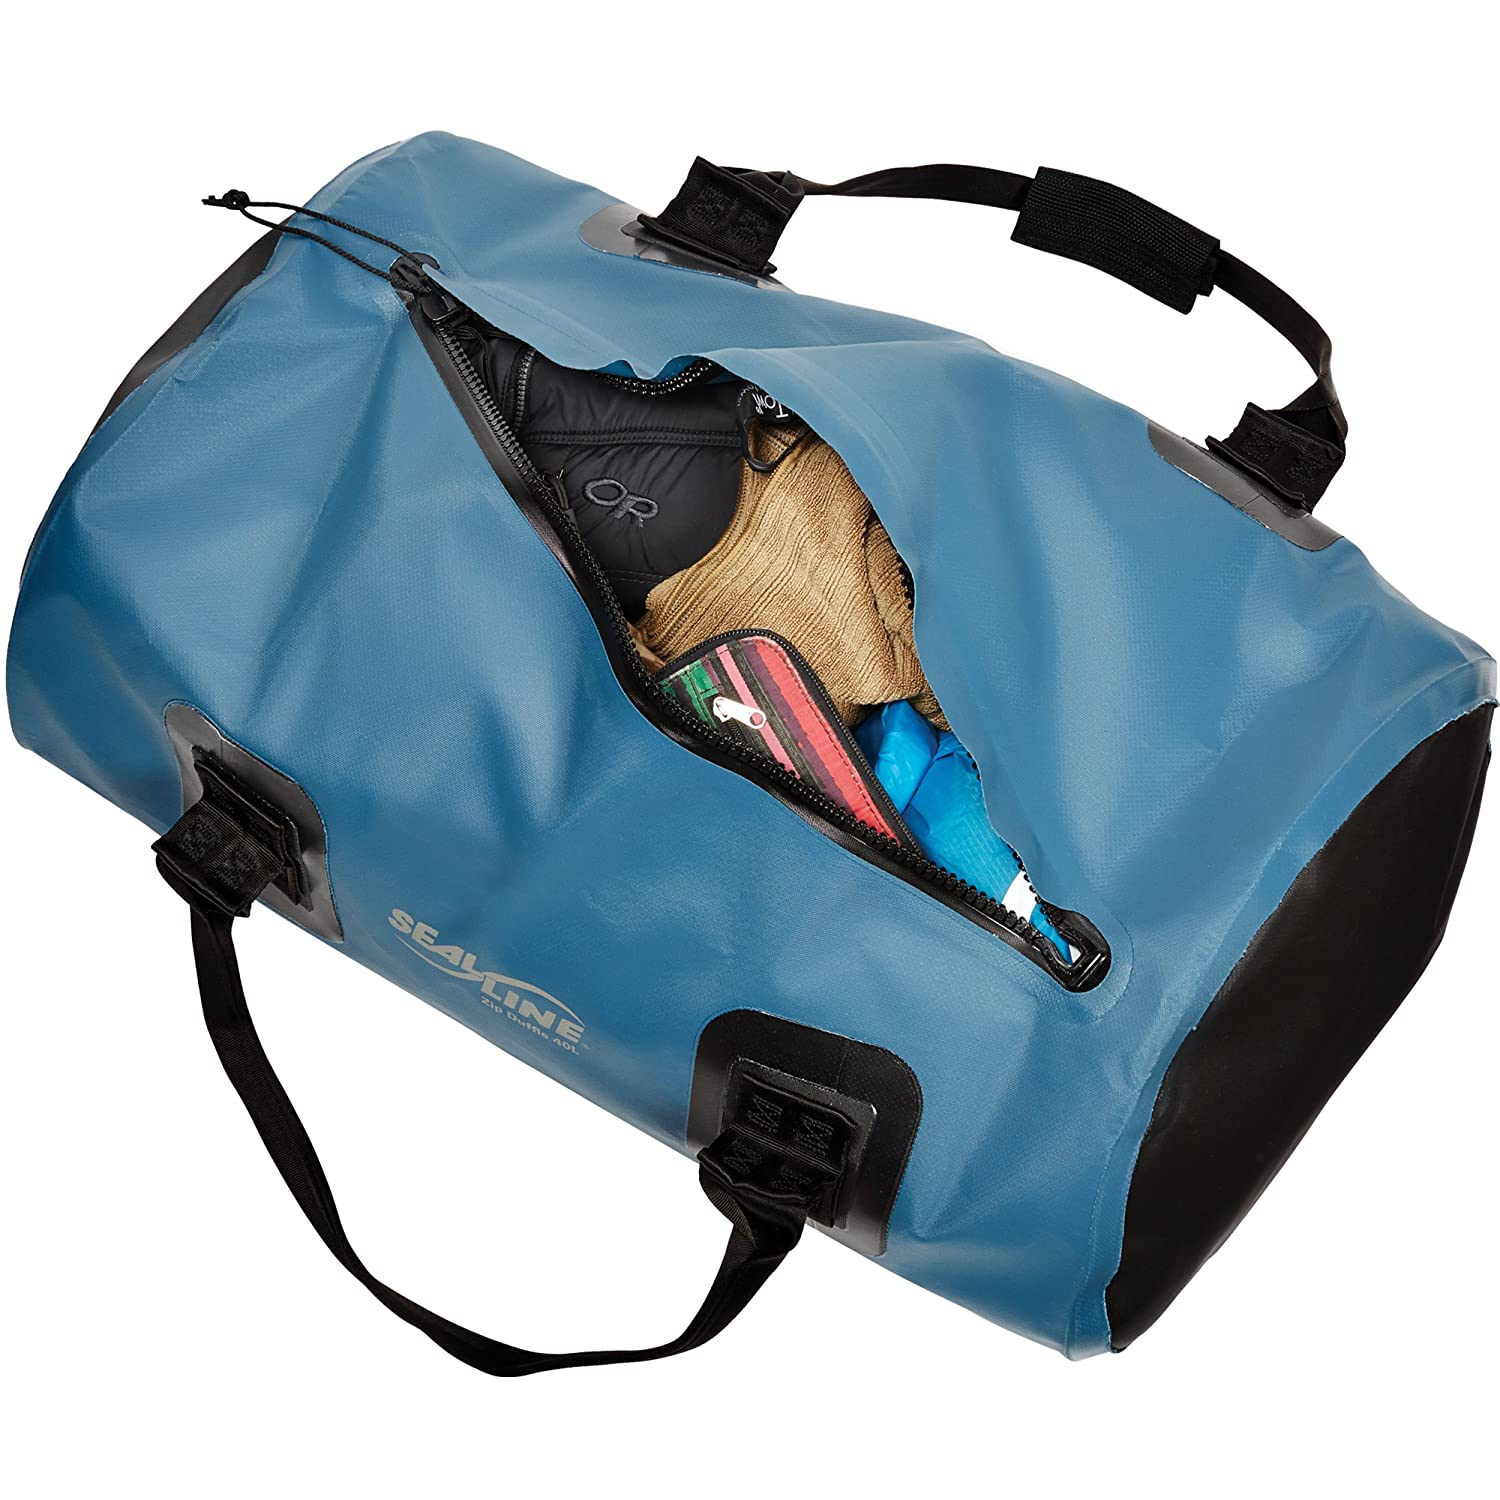 c7ca26797892 Amazon.com   SealLine Zip Duffle Bag   Clothing